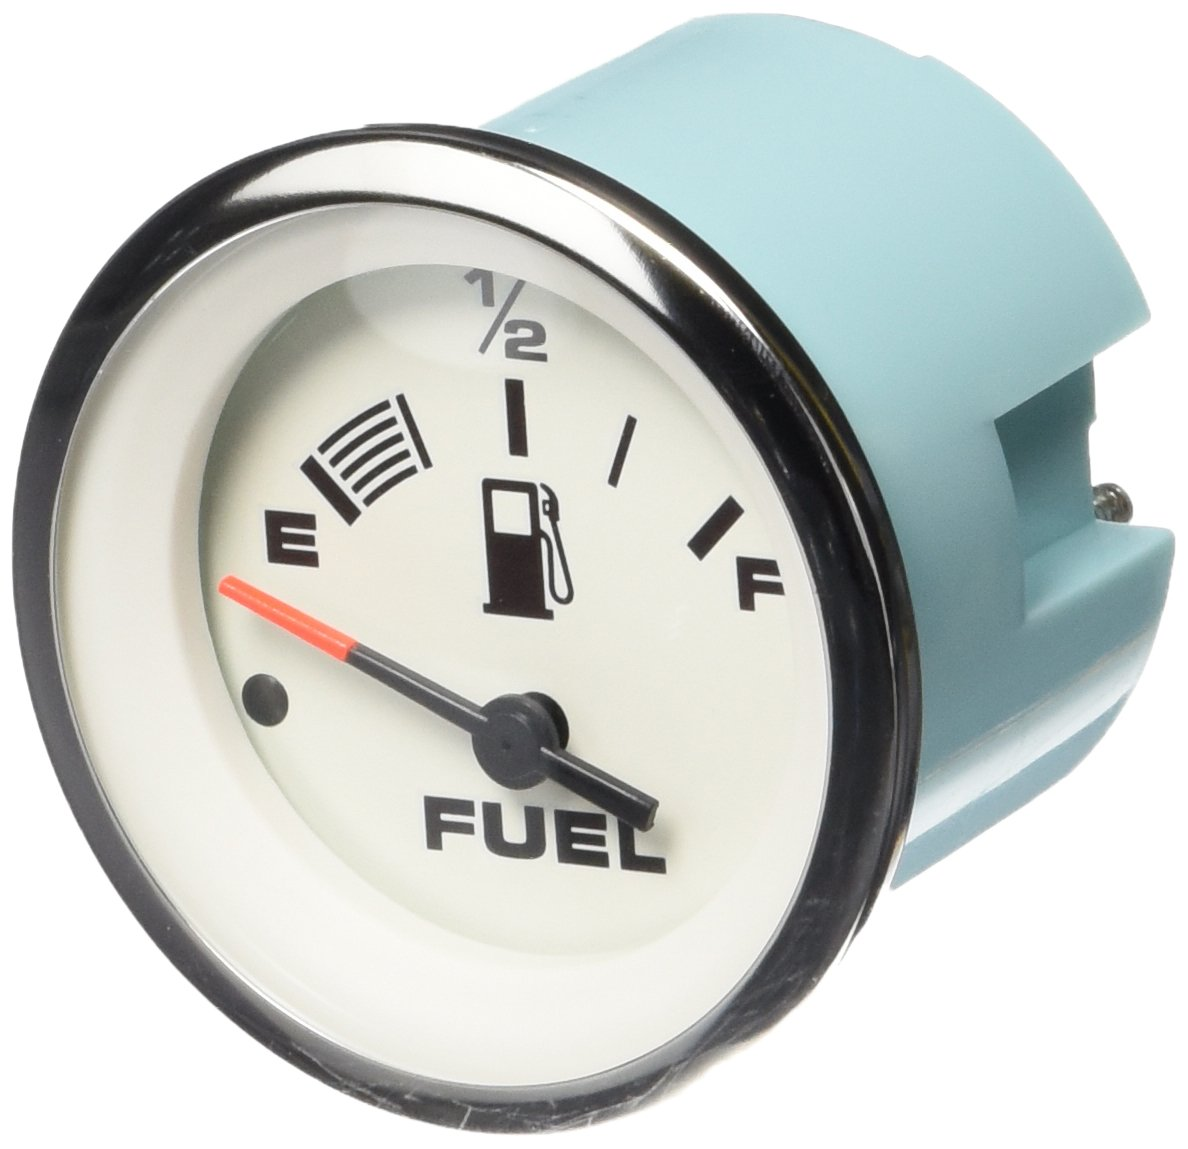 Sierra International 59655P Medium Lido Fog Resistant Fuel Gauge